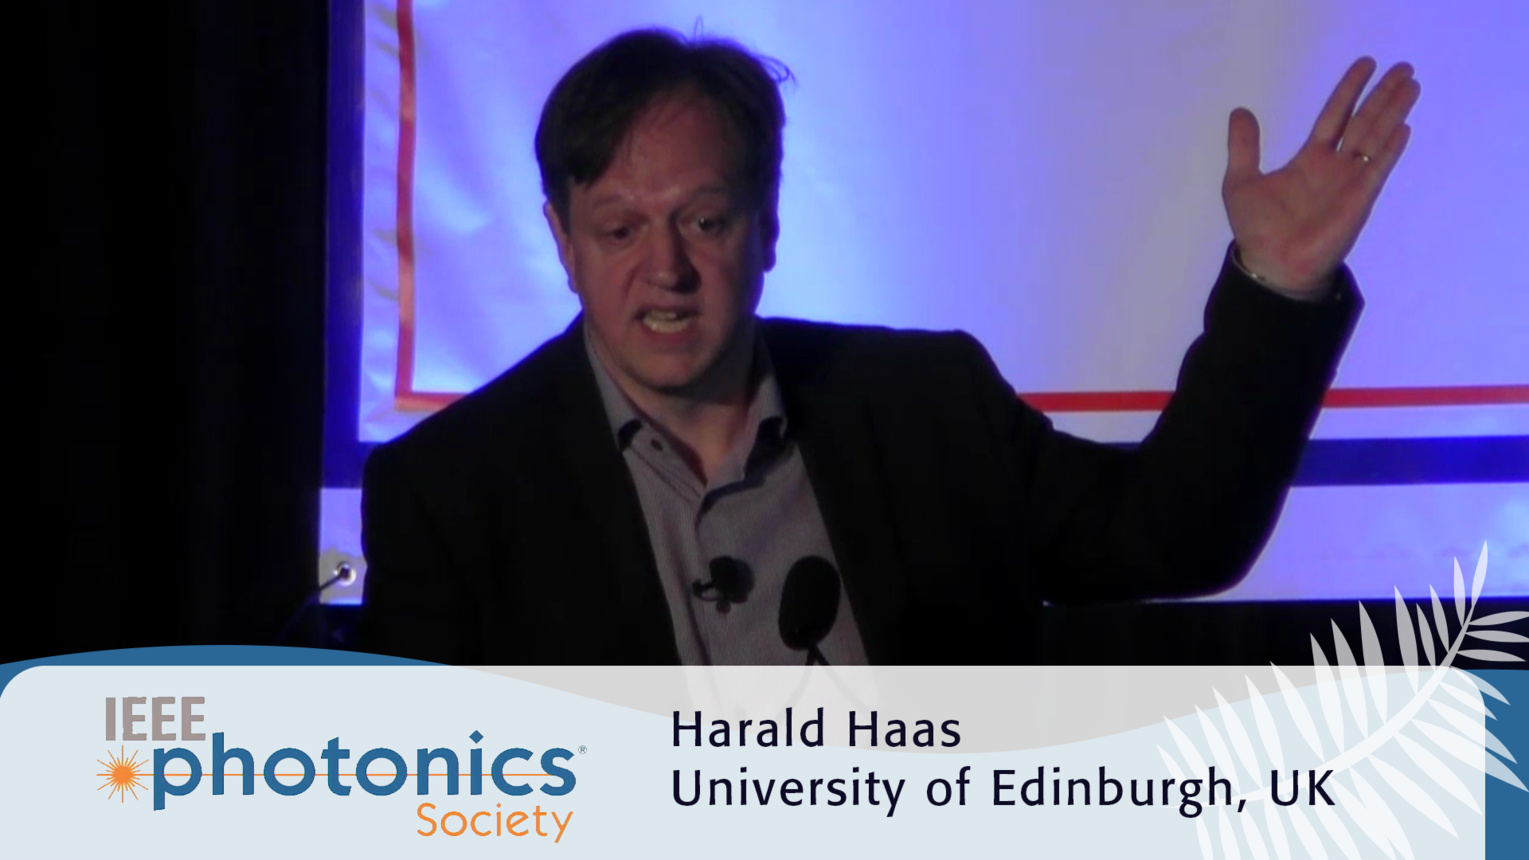 LiFi: Misconceptions, Conceptions and Opportunities - Harald Haas Plenary from the 2016 IEEE Photonics Conference